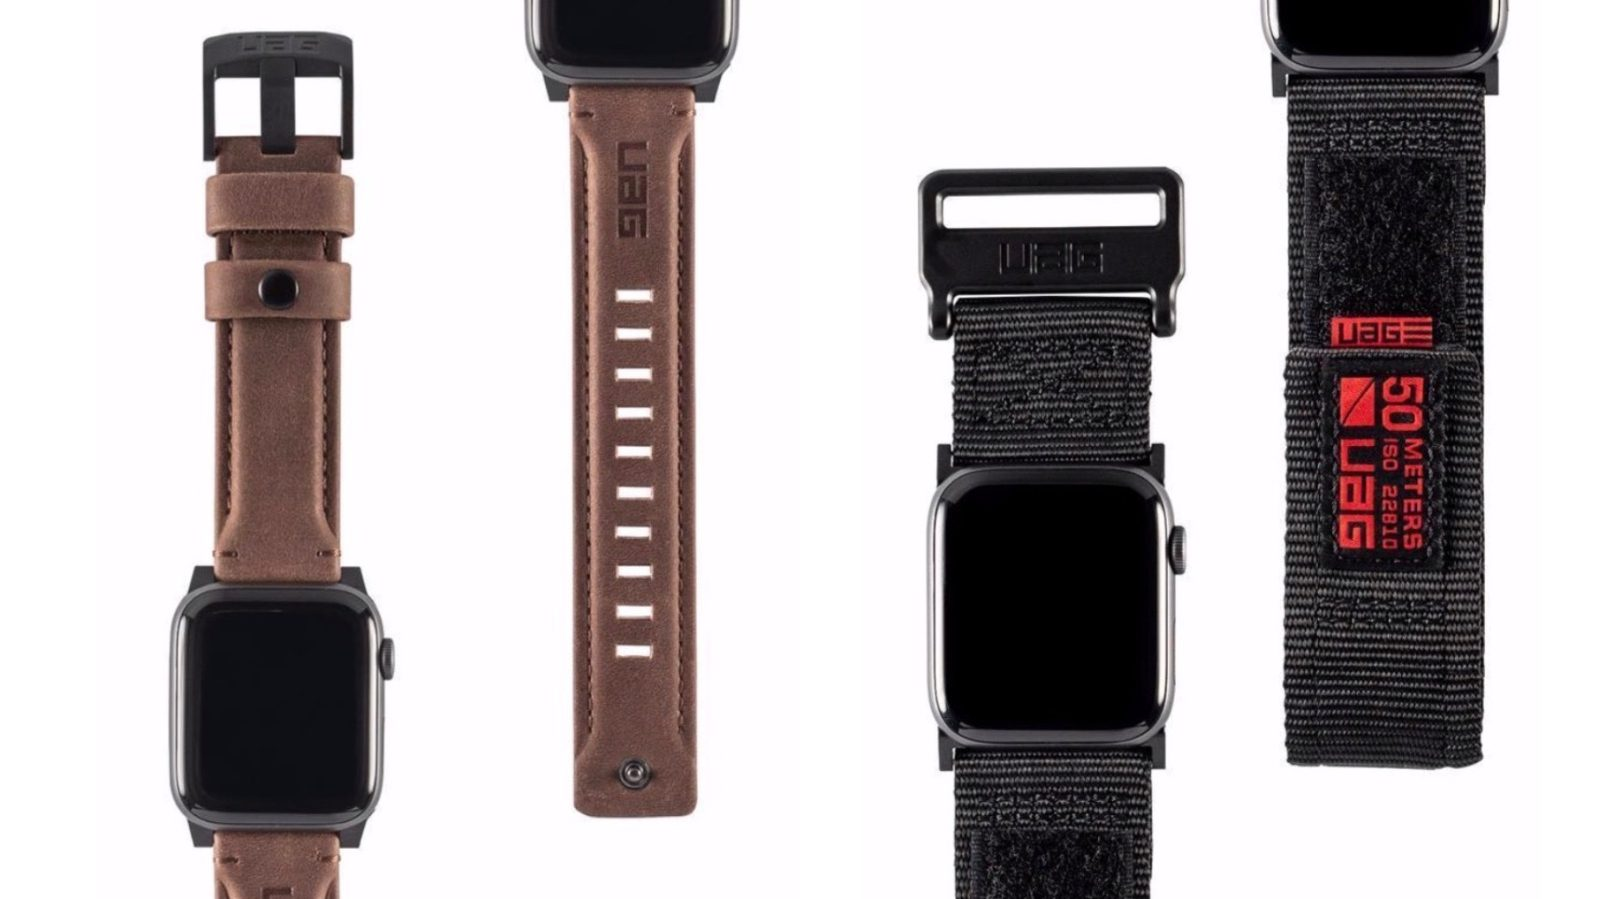 Uag Launches Rugged Leather And Nylon Le Watch Straps